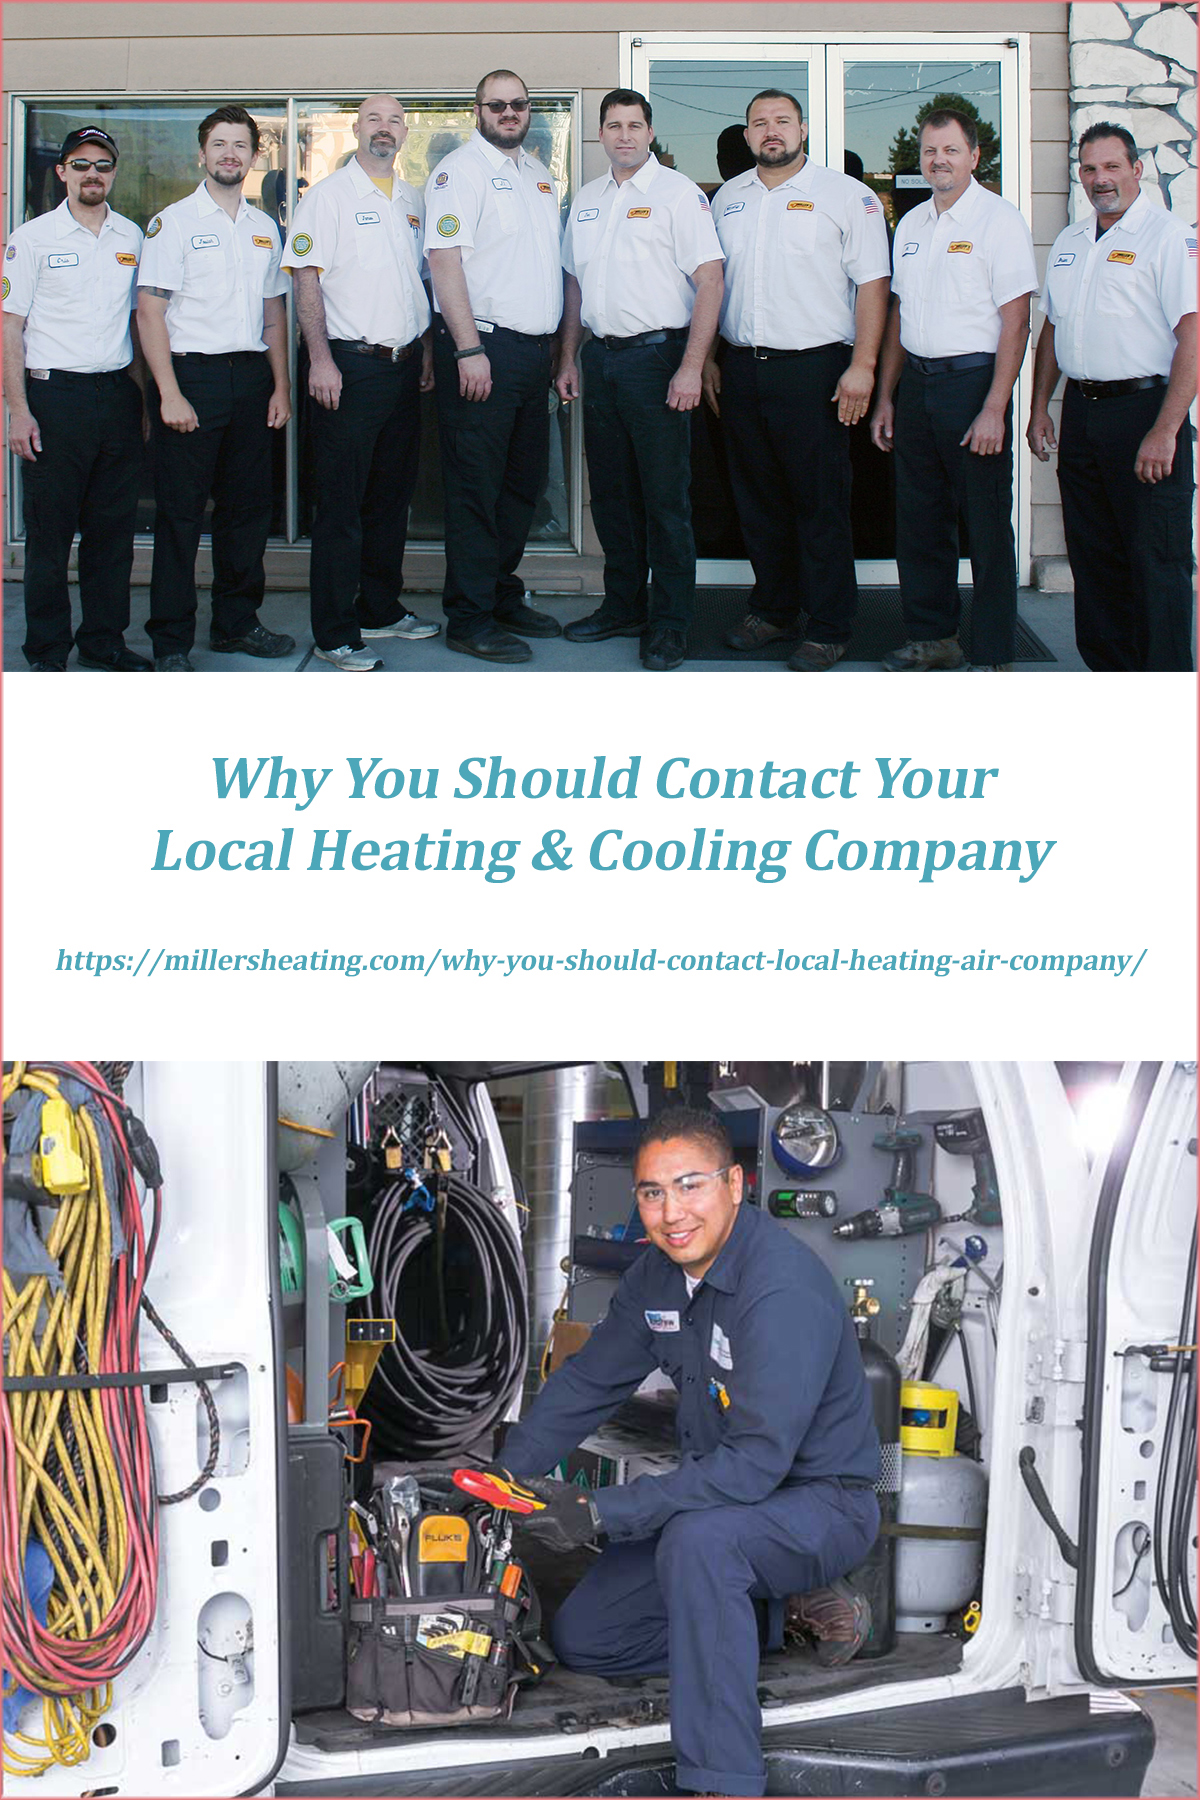 There are many reasons to call your local heating and air company apart from when your system isn't working right. #HVAC @millersheatingair